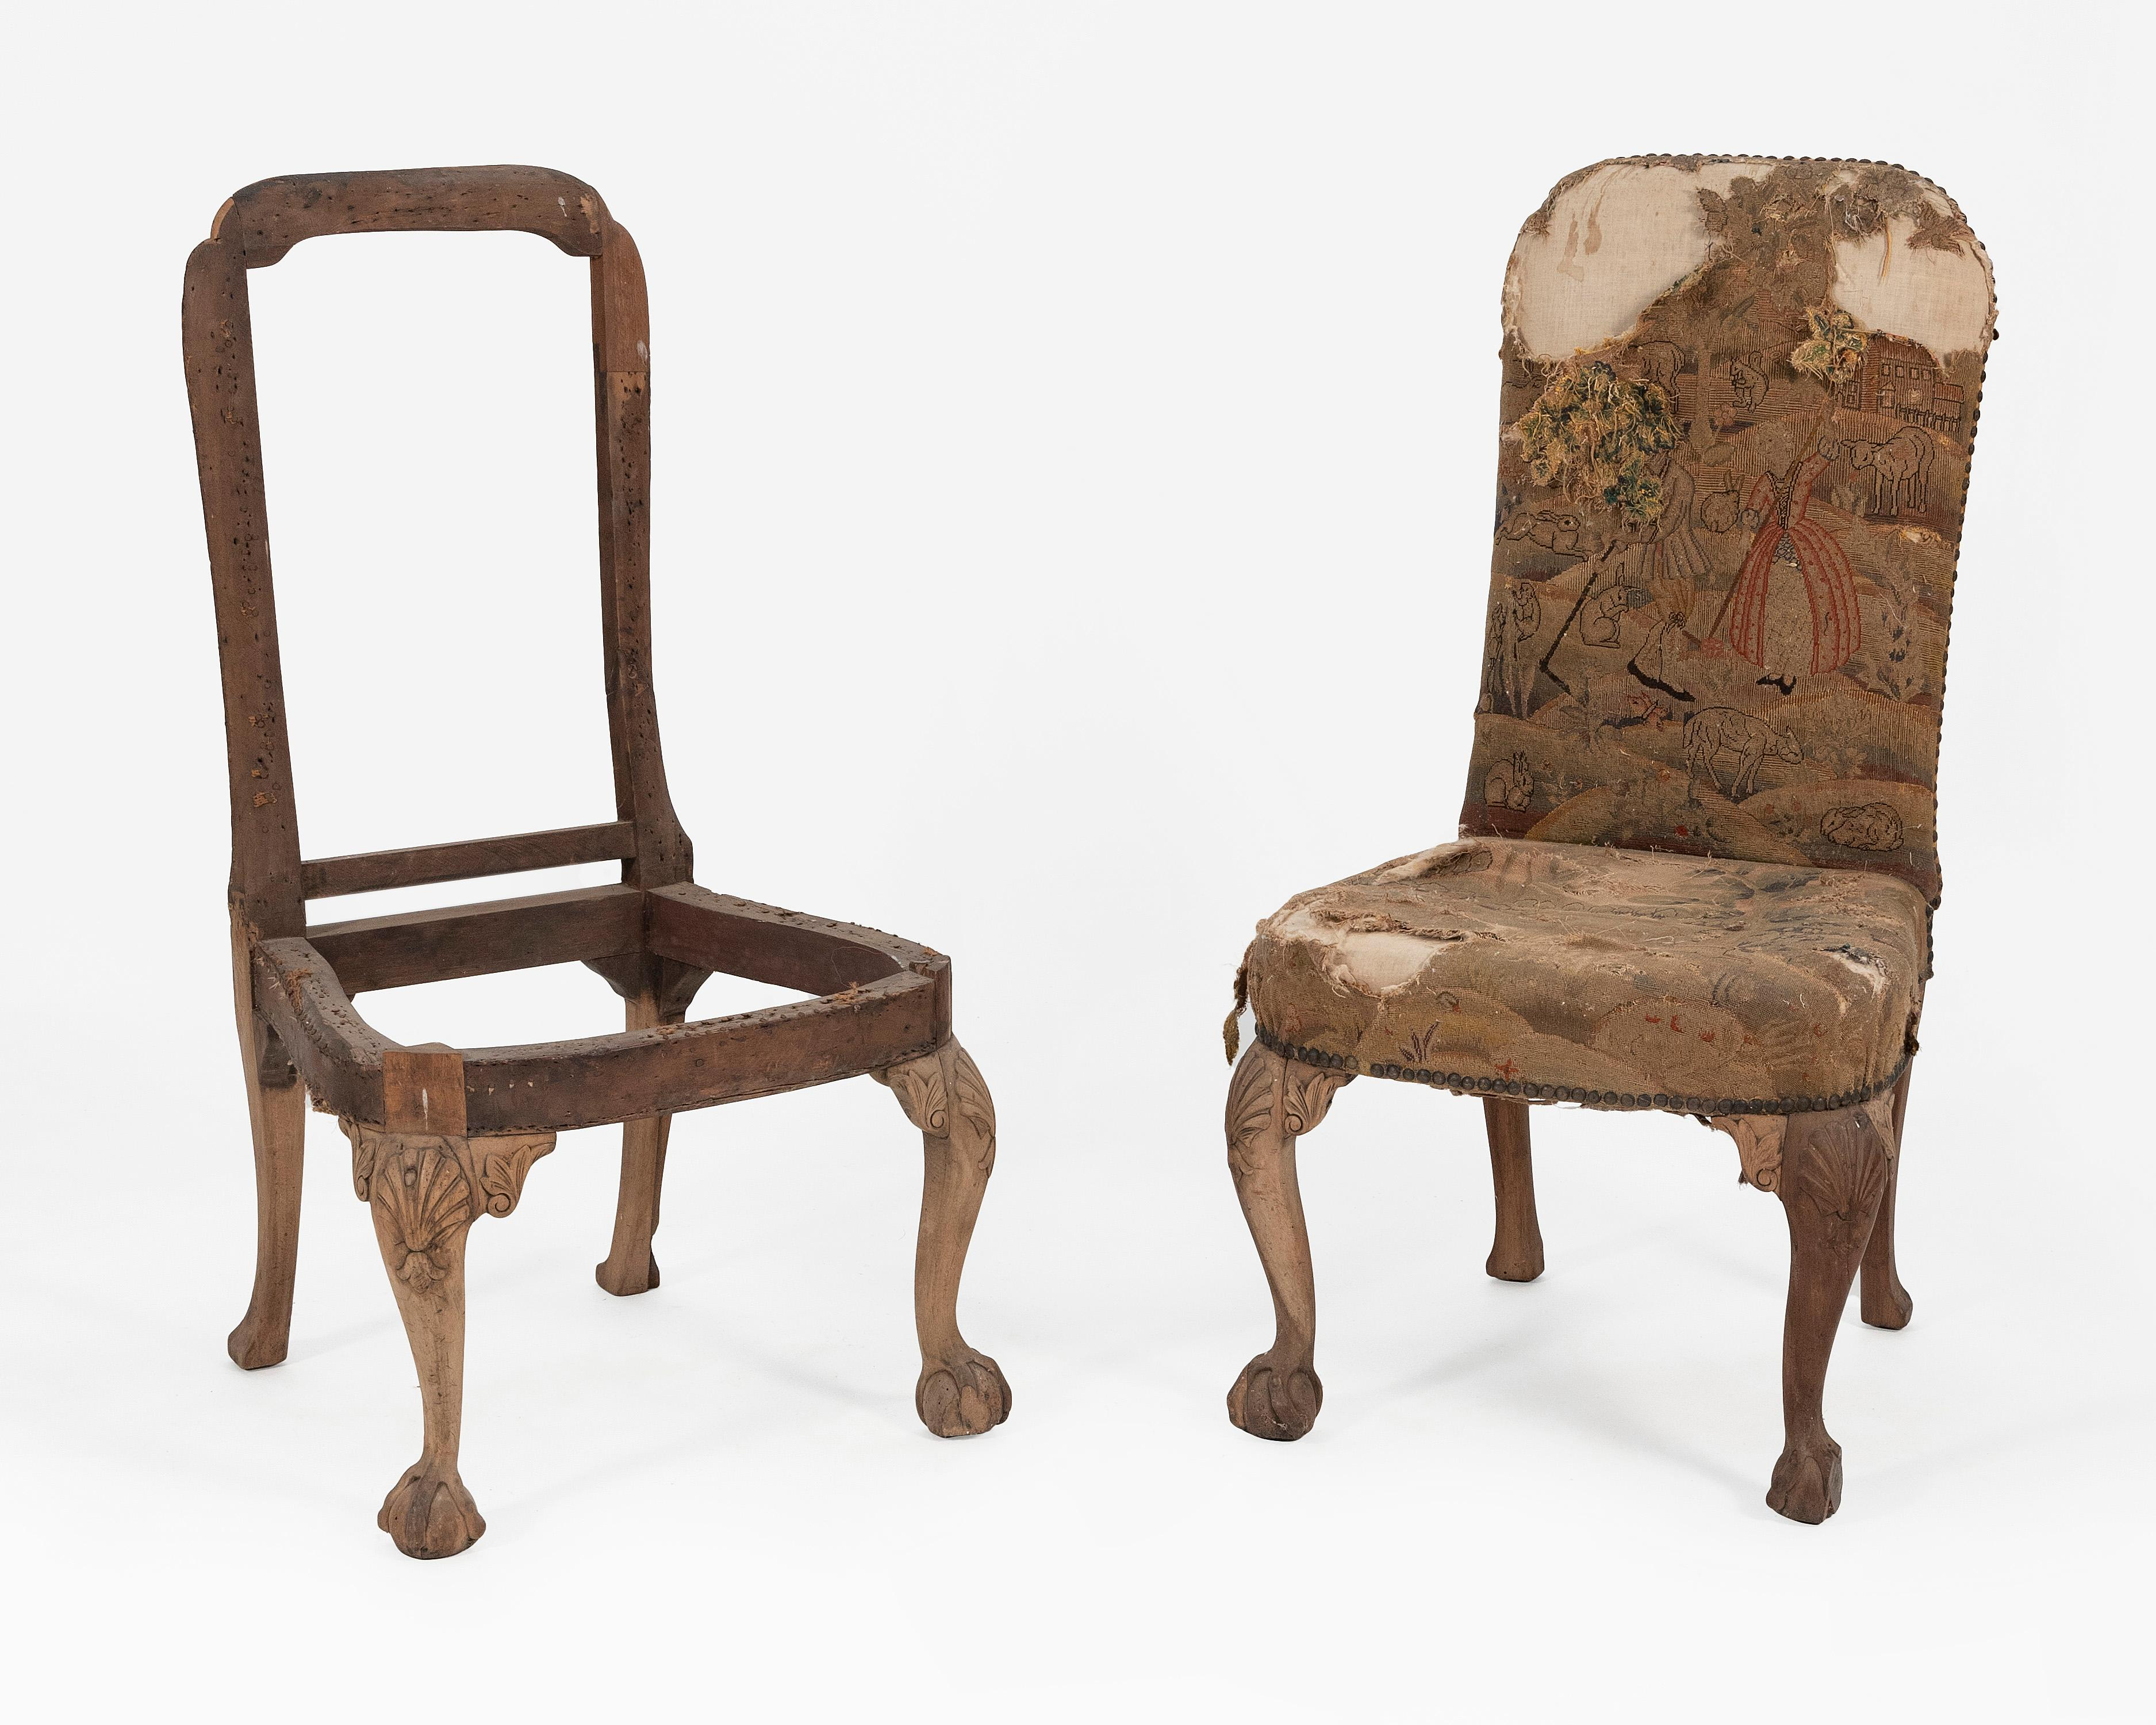 """PAIR OF ENGLISH BACK STOOL CHAIRS 18th Century Back heights 42"""". Seat heights 18.5""""."""